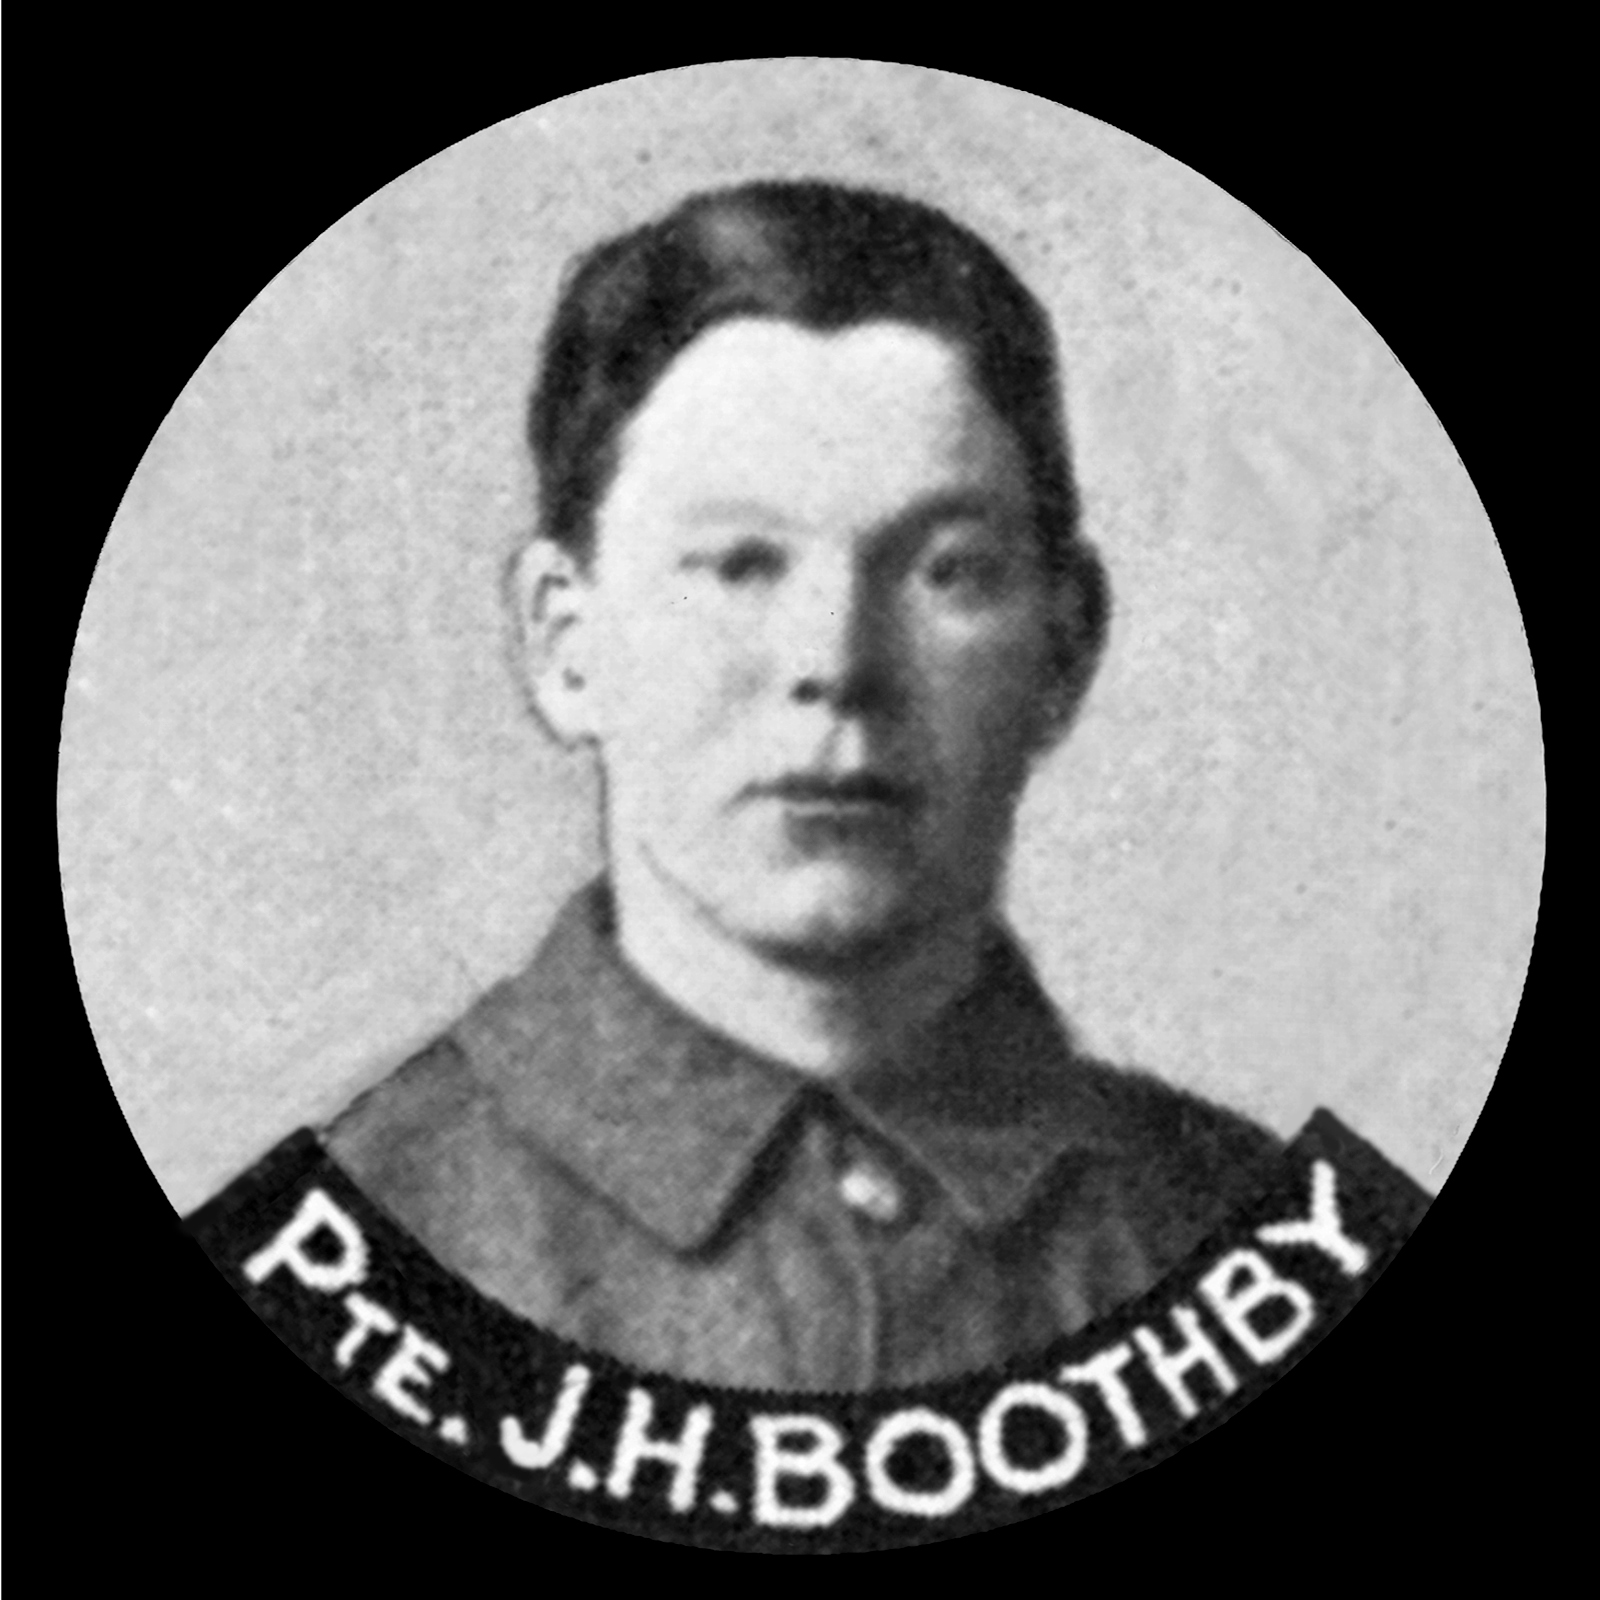 BOOTHBY Joseph Henry